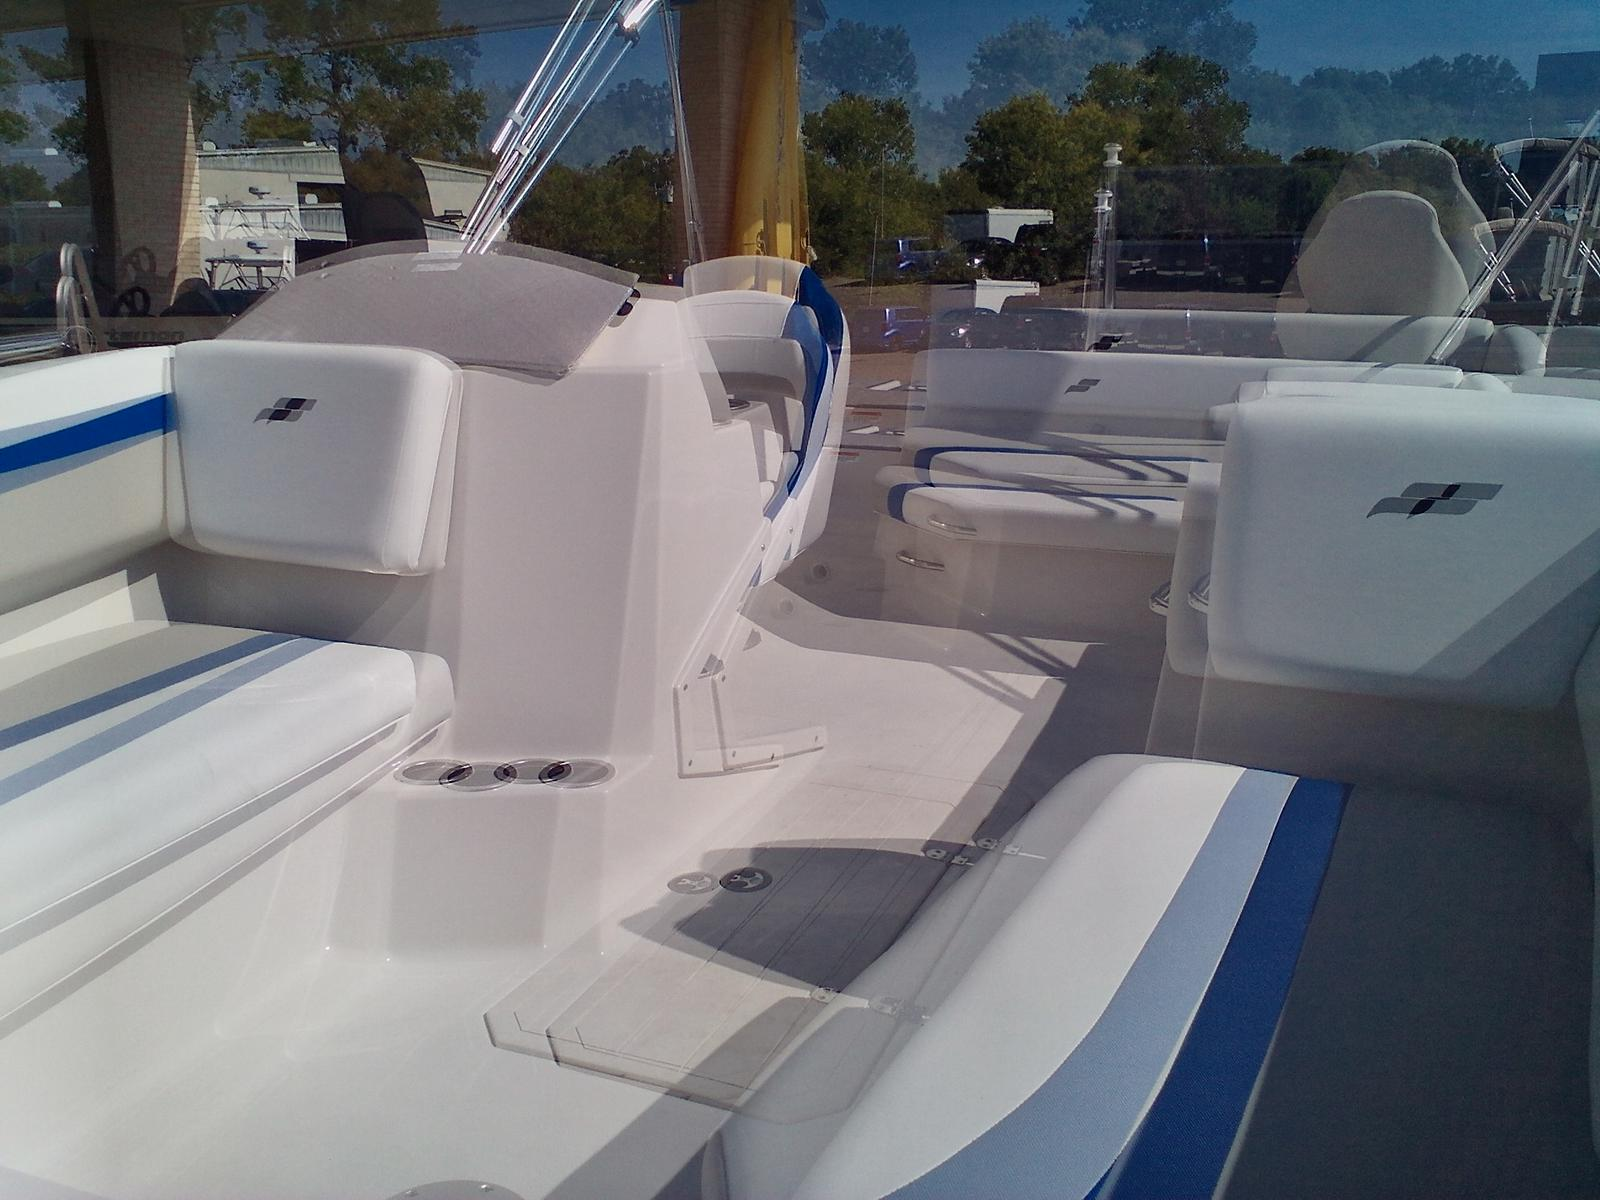 2021 Starcraft boat for sale, model of the boat is SVX 171 & Image # 3 of 6